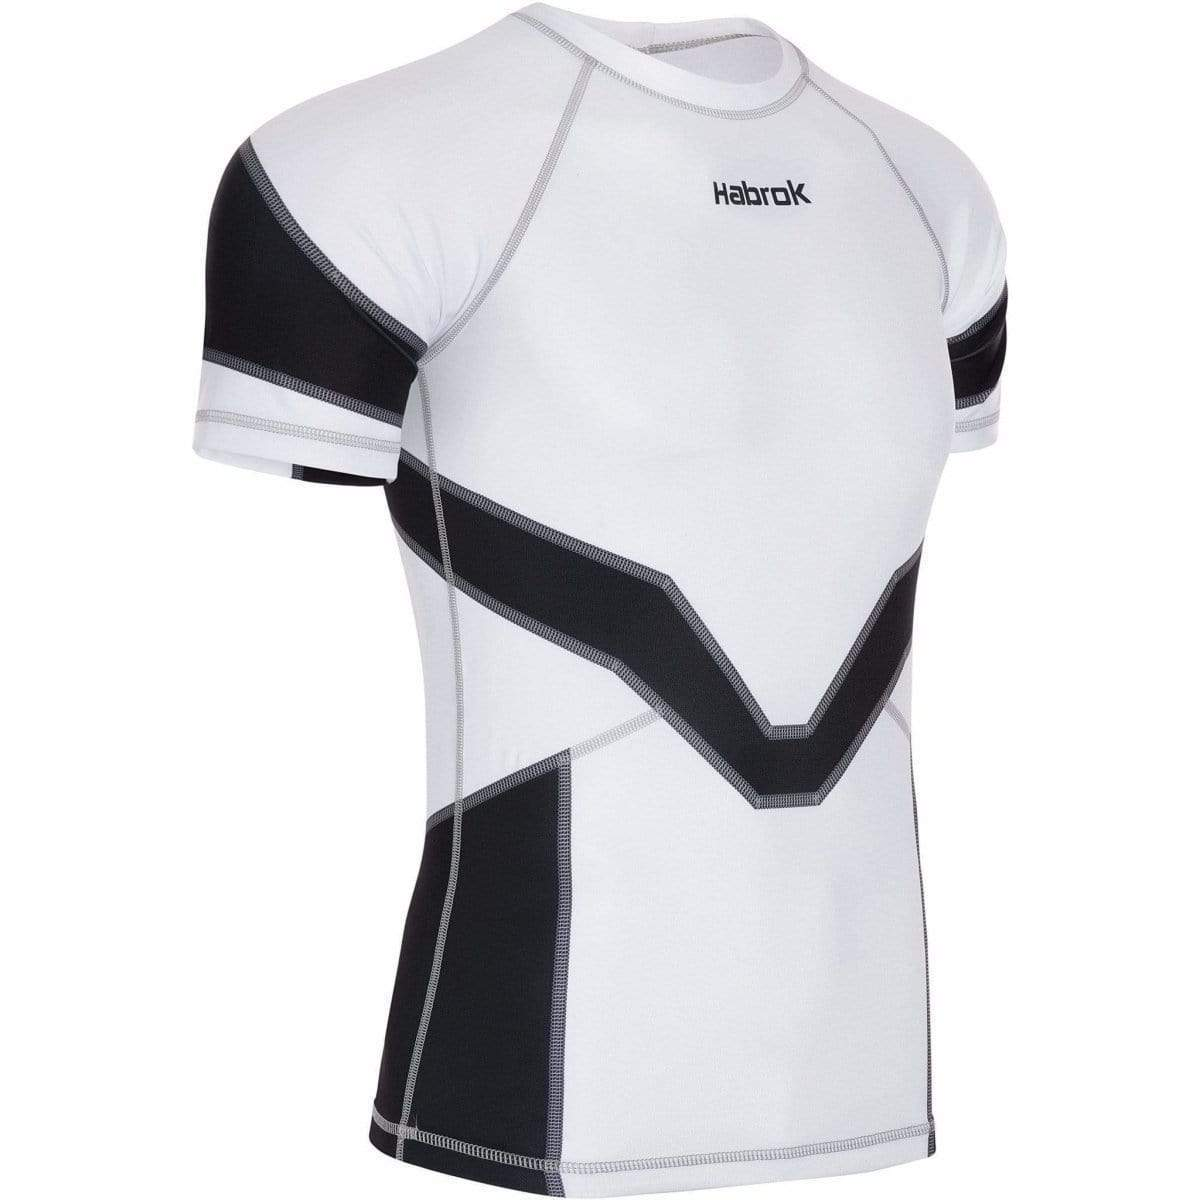 Habrok Rash Guard S / BLACK Transform 2.0 | Ranked Rash Guard Men | Half Sleeve | Men